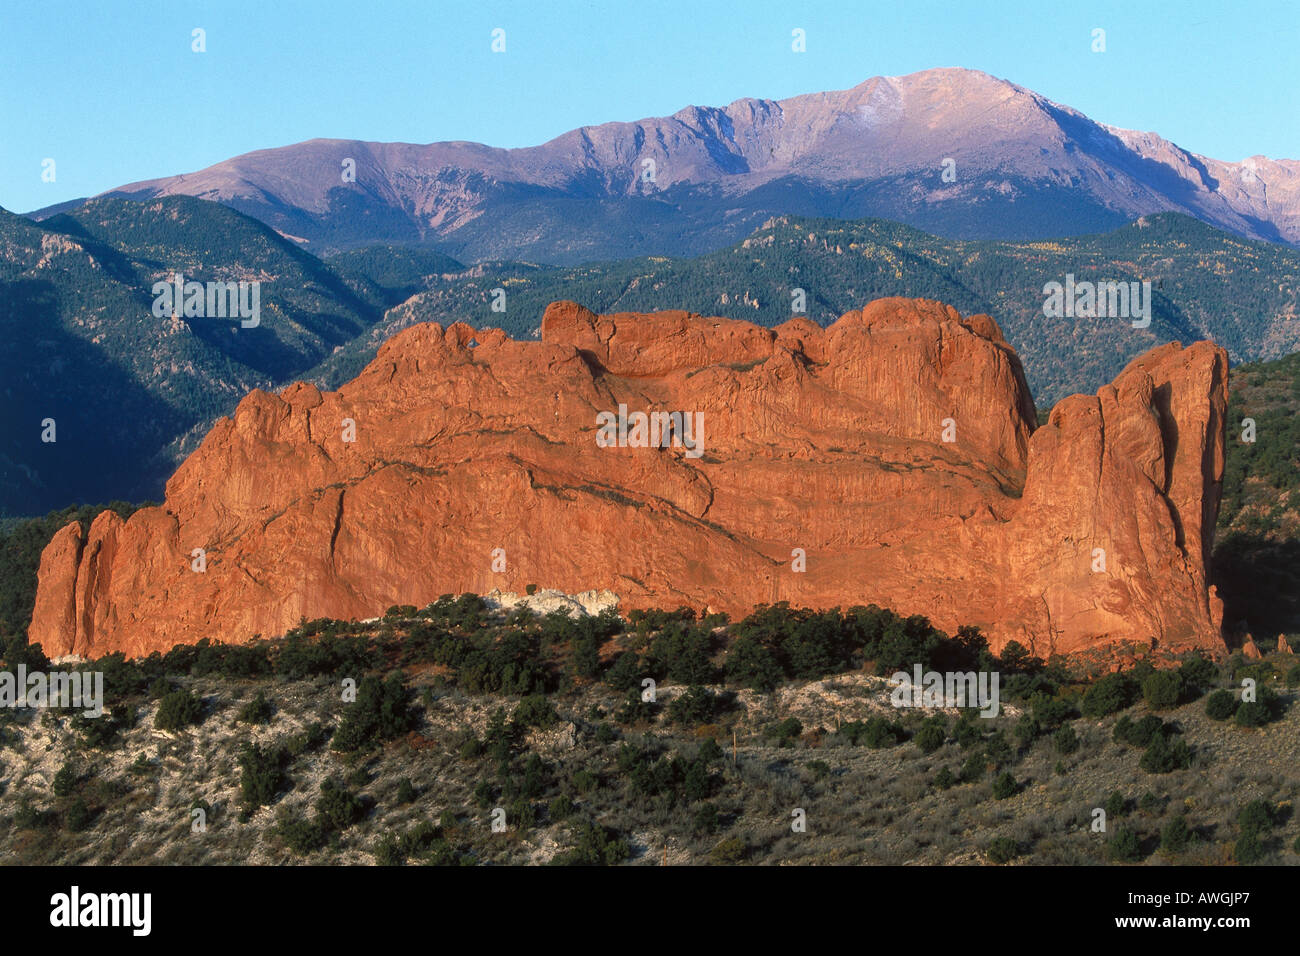 USA, Colorado, Garden of the Gods, Colorado Springs, Kissing